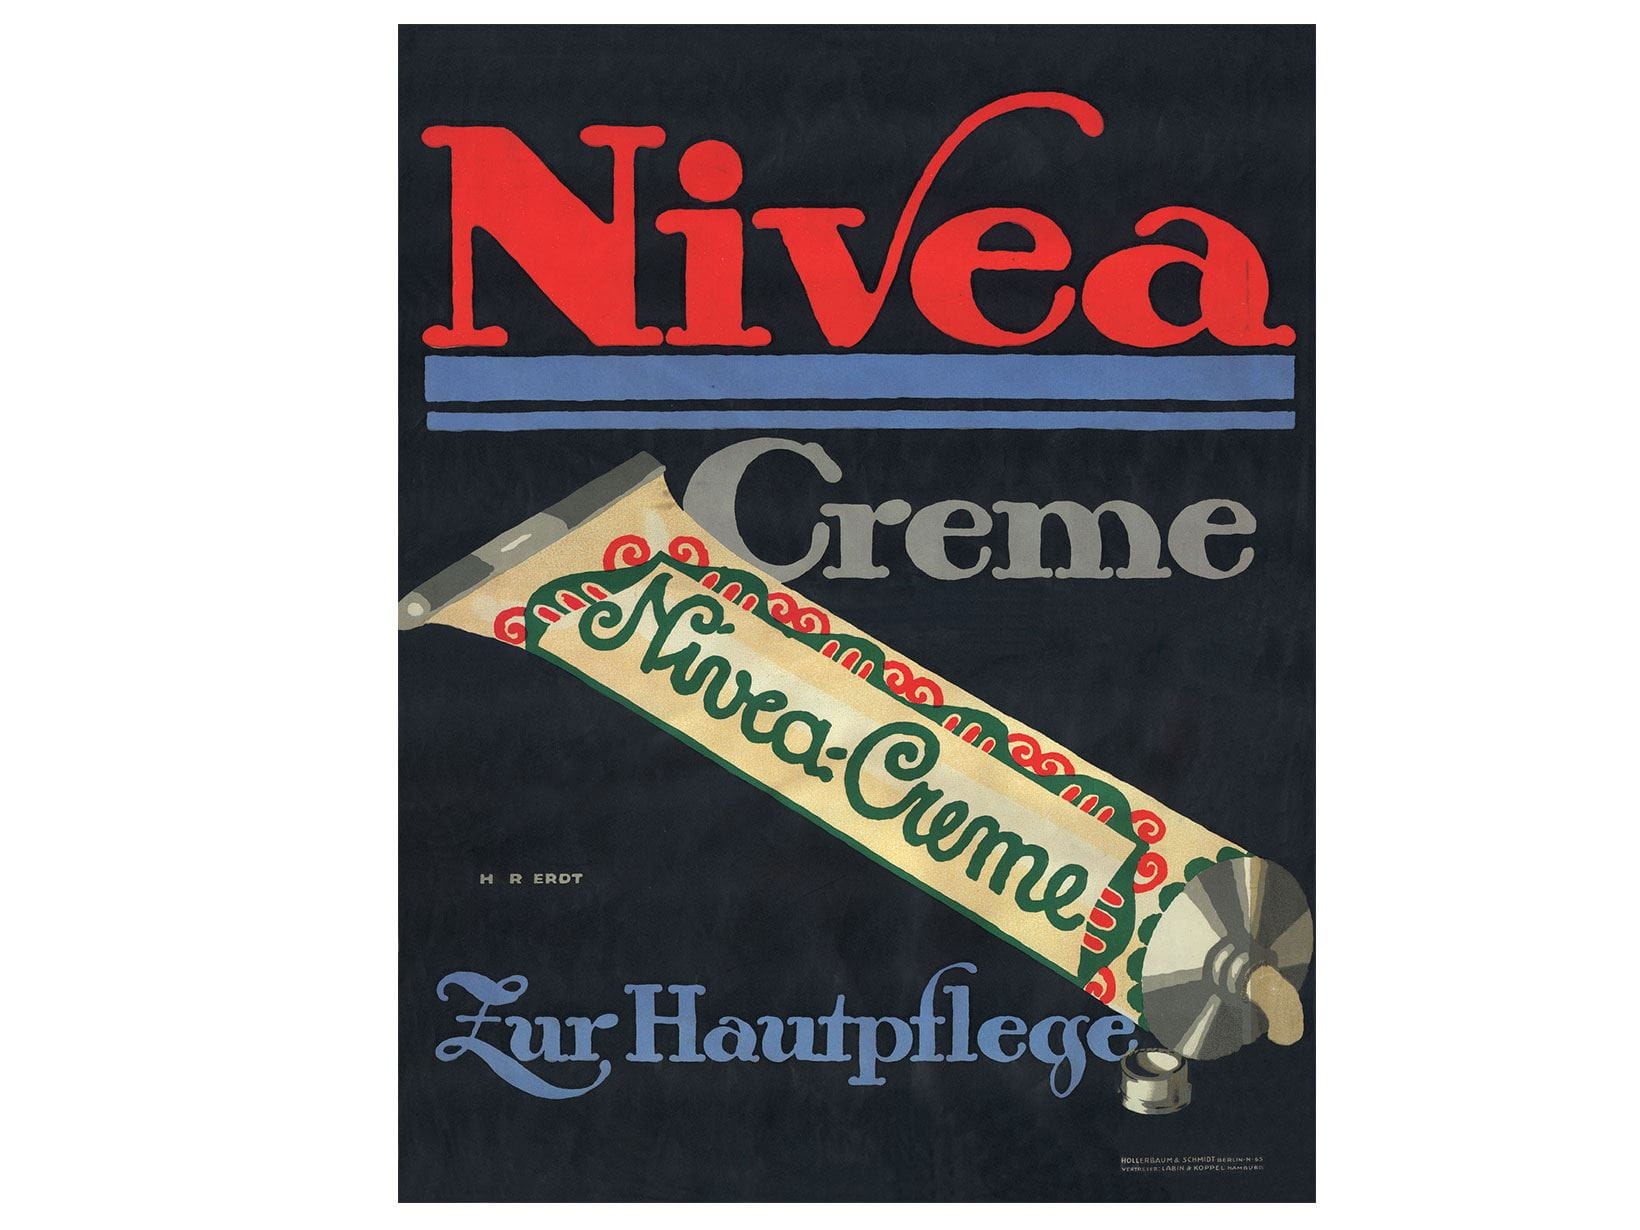 """One of the first NIVEA advertisements for cream and soap from 1911/1912"